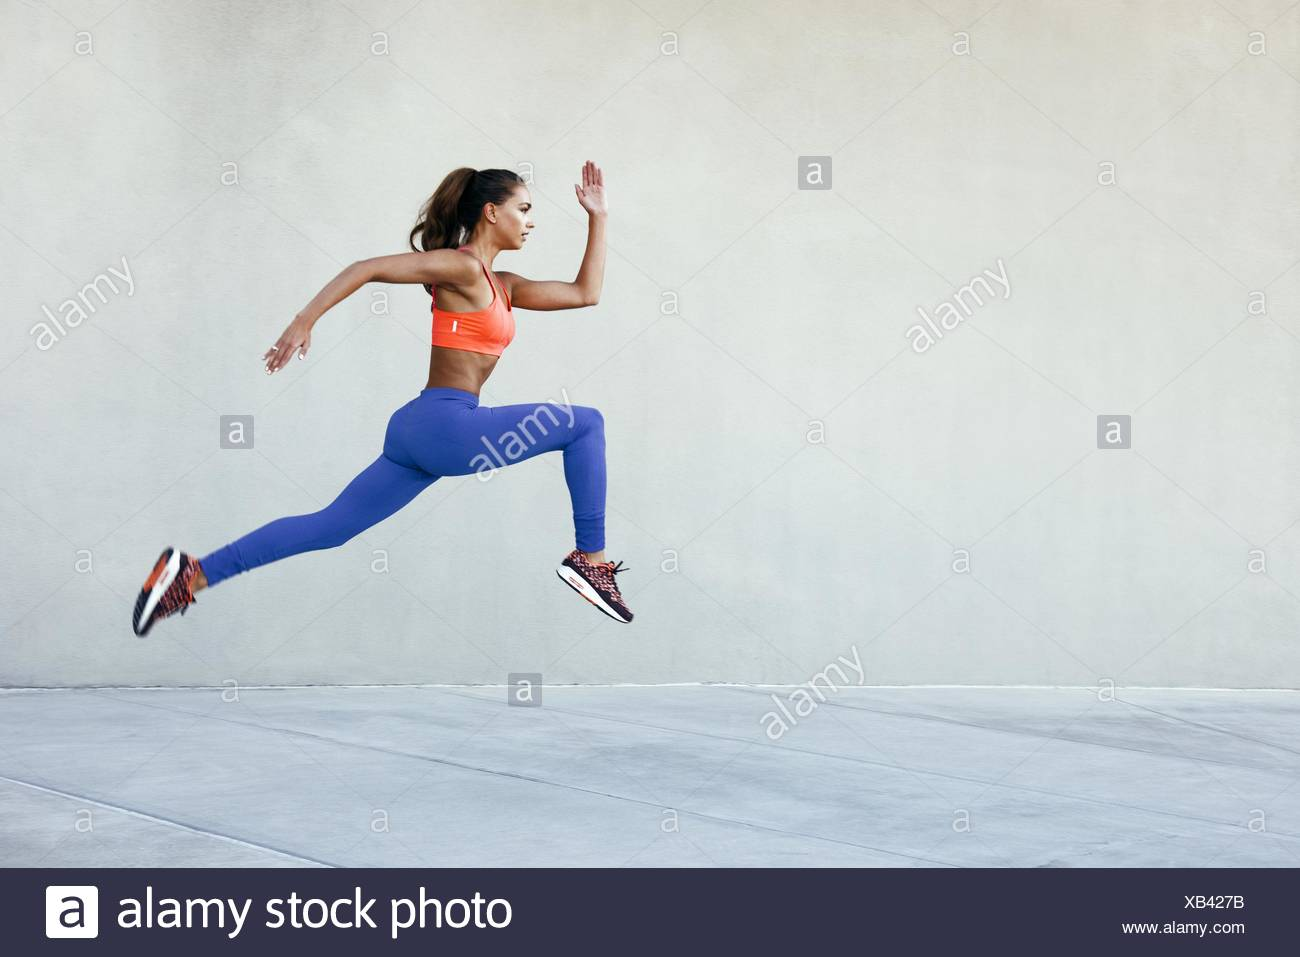 Side view of young woman wearing sports clothing in mid air striding stance - Stock Image